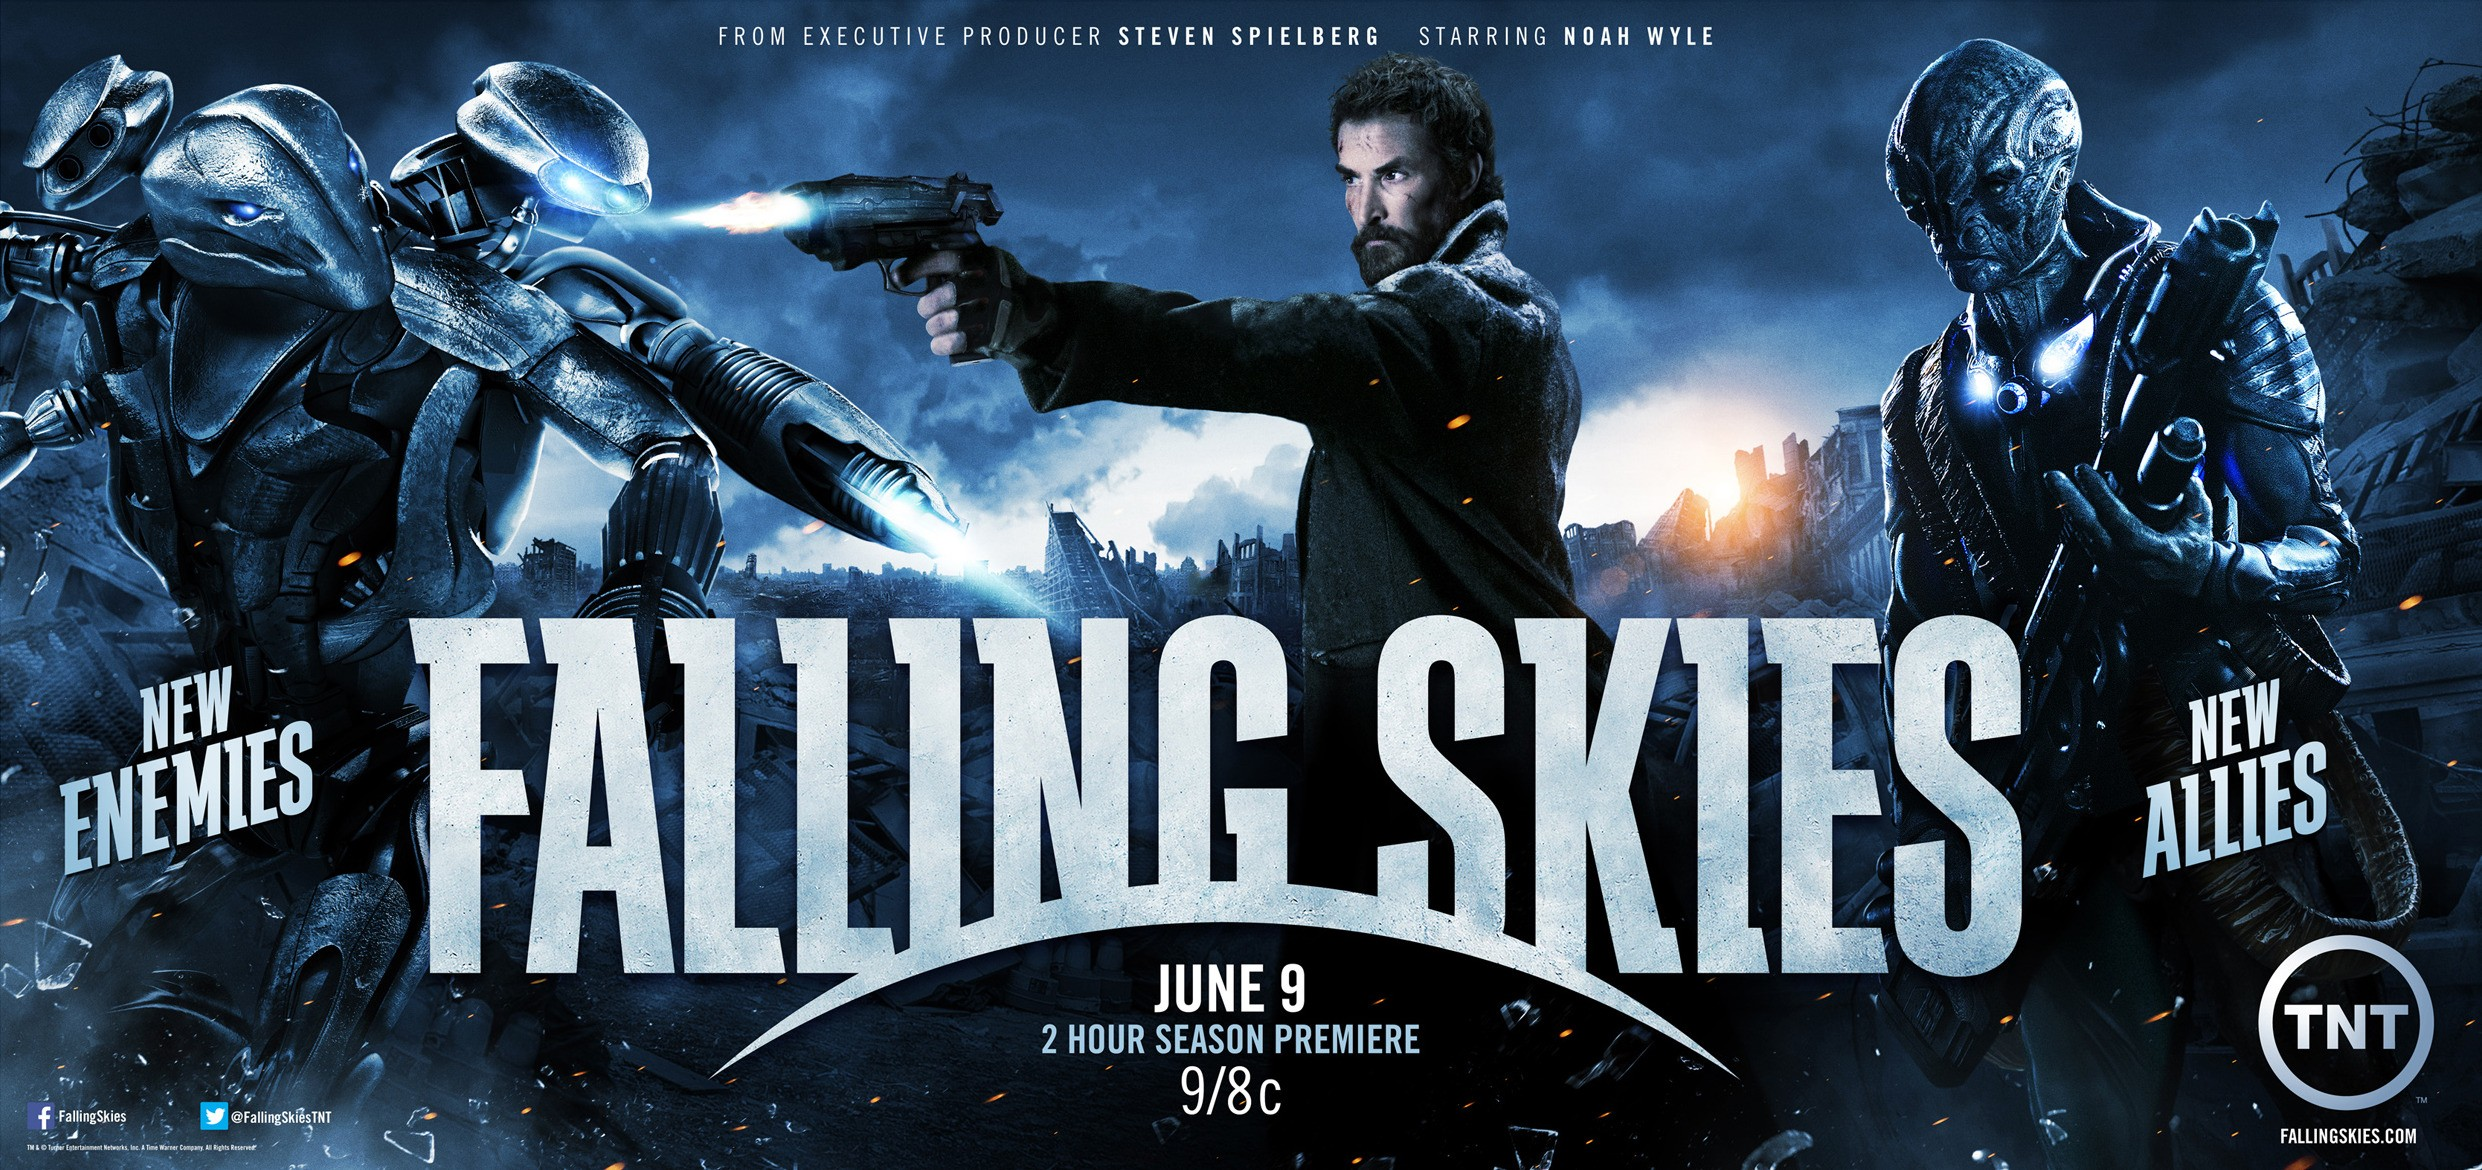 Falling Skies wallpapers, TV Show, HQ Falling Skies pictures | 4K  Wallpapers 2019